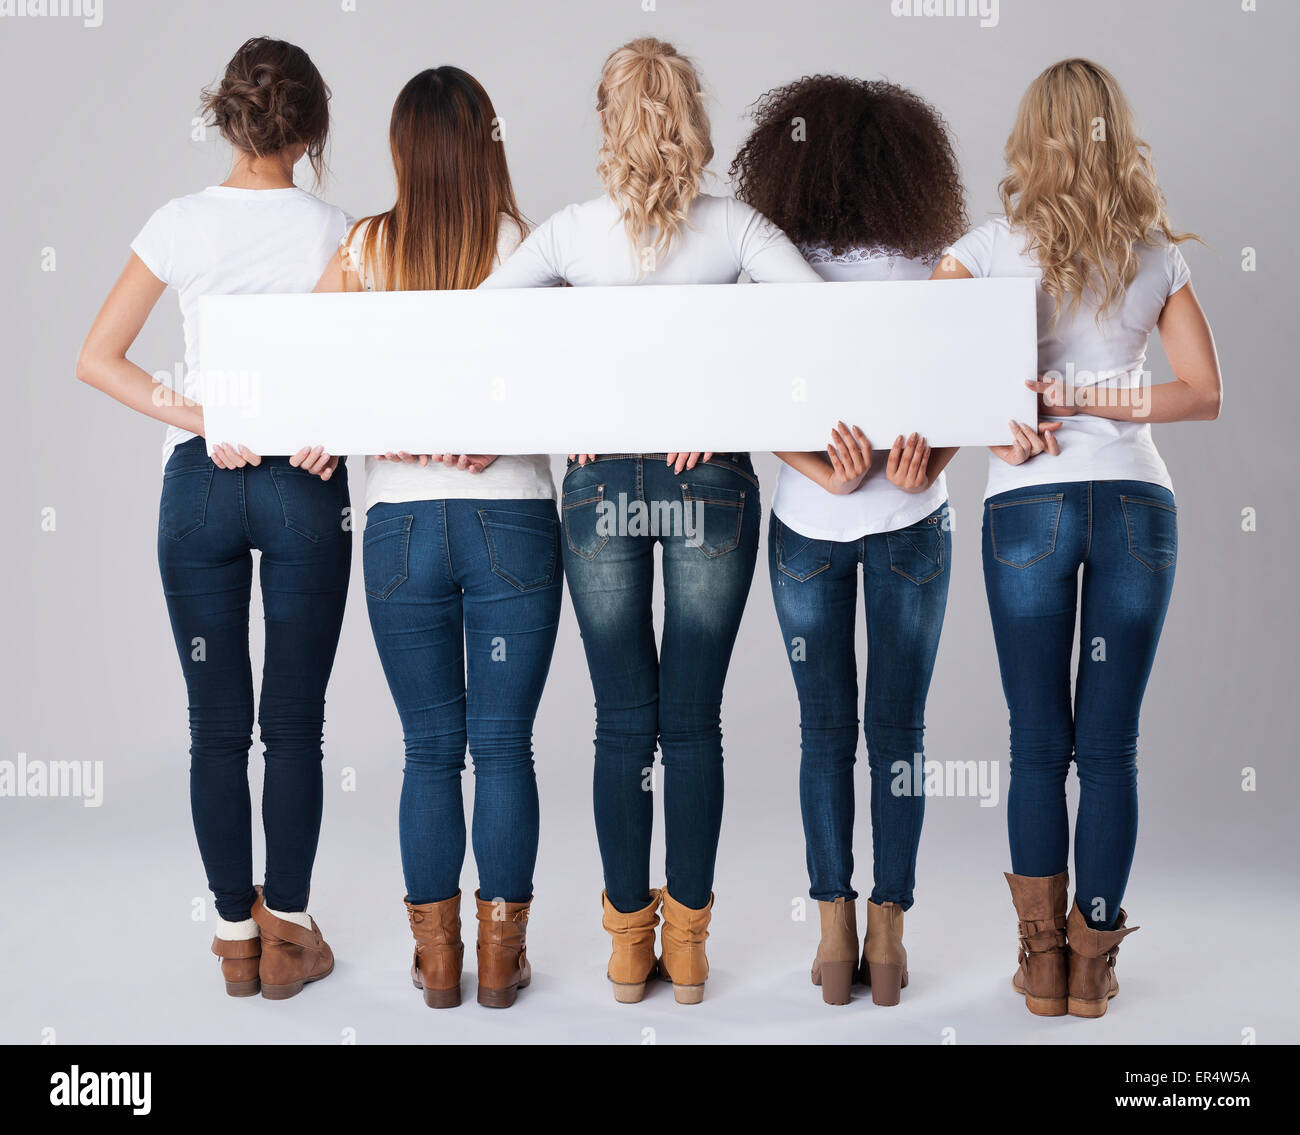 Girls in jeans holding empty banner. Debica, Poland - Stock Image